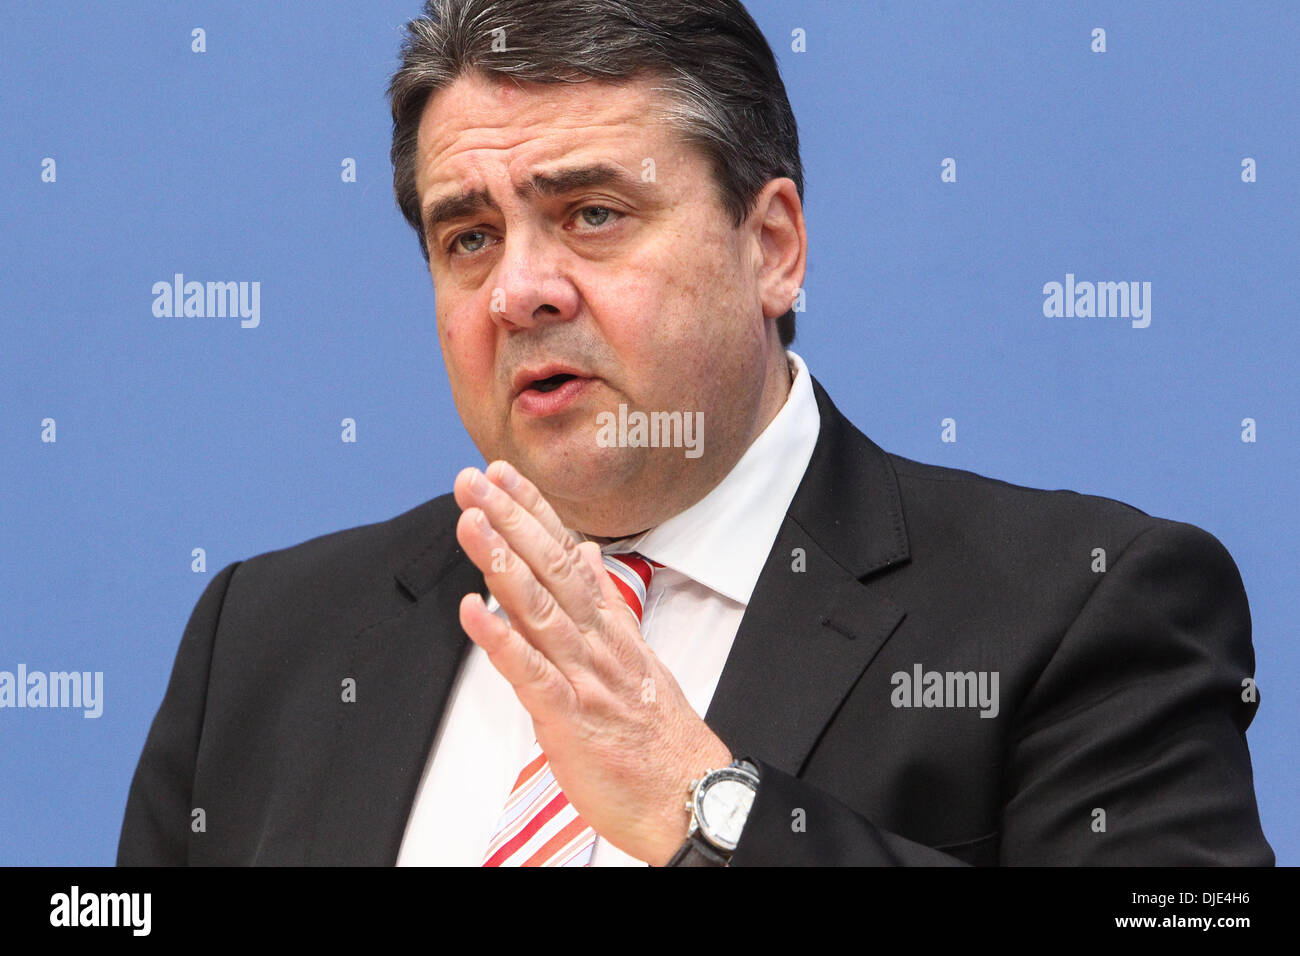 Berlin, Germany. 27th Nov, 2013. Sigmar Gabriel, Chairman of the Social Democratic Party (SPD) attends a press conference in Berlin, Germany, on Nov. 27, 2013. Leaders from Germany's main parties signed provisionally a coalition agreement on Wednesday, paving the road for forming a new government two months after a federal election. Credit:  Zhang Fan/Xinhua/Alamy Live News Stock Photo